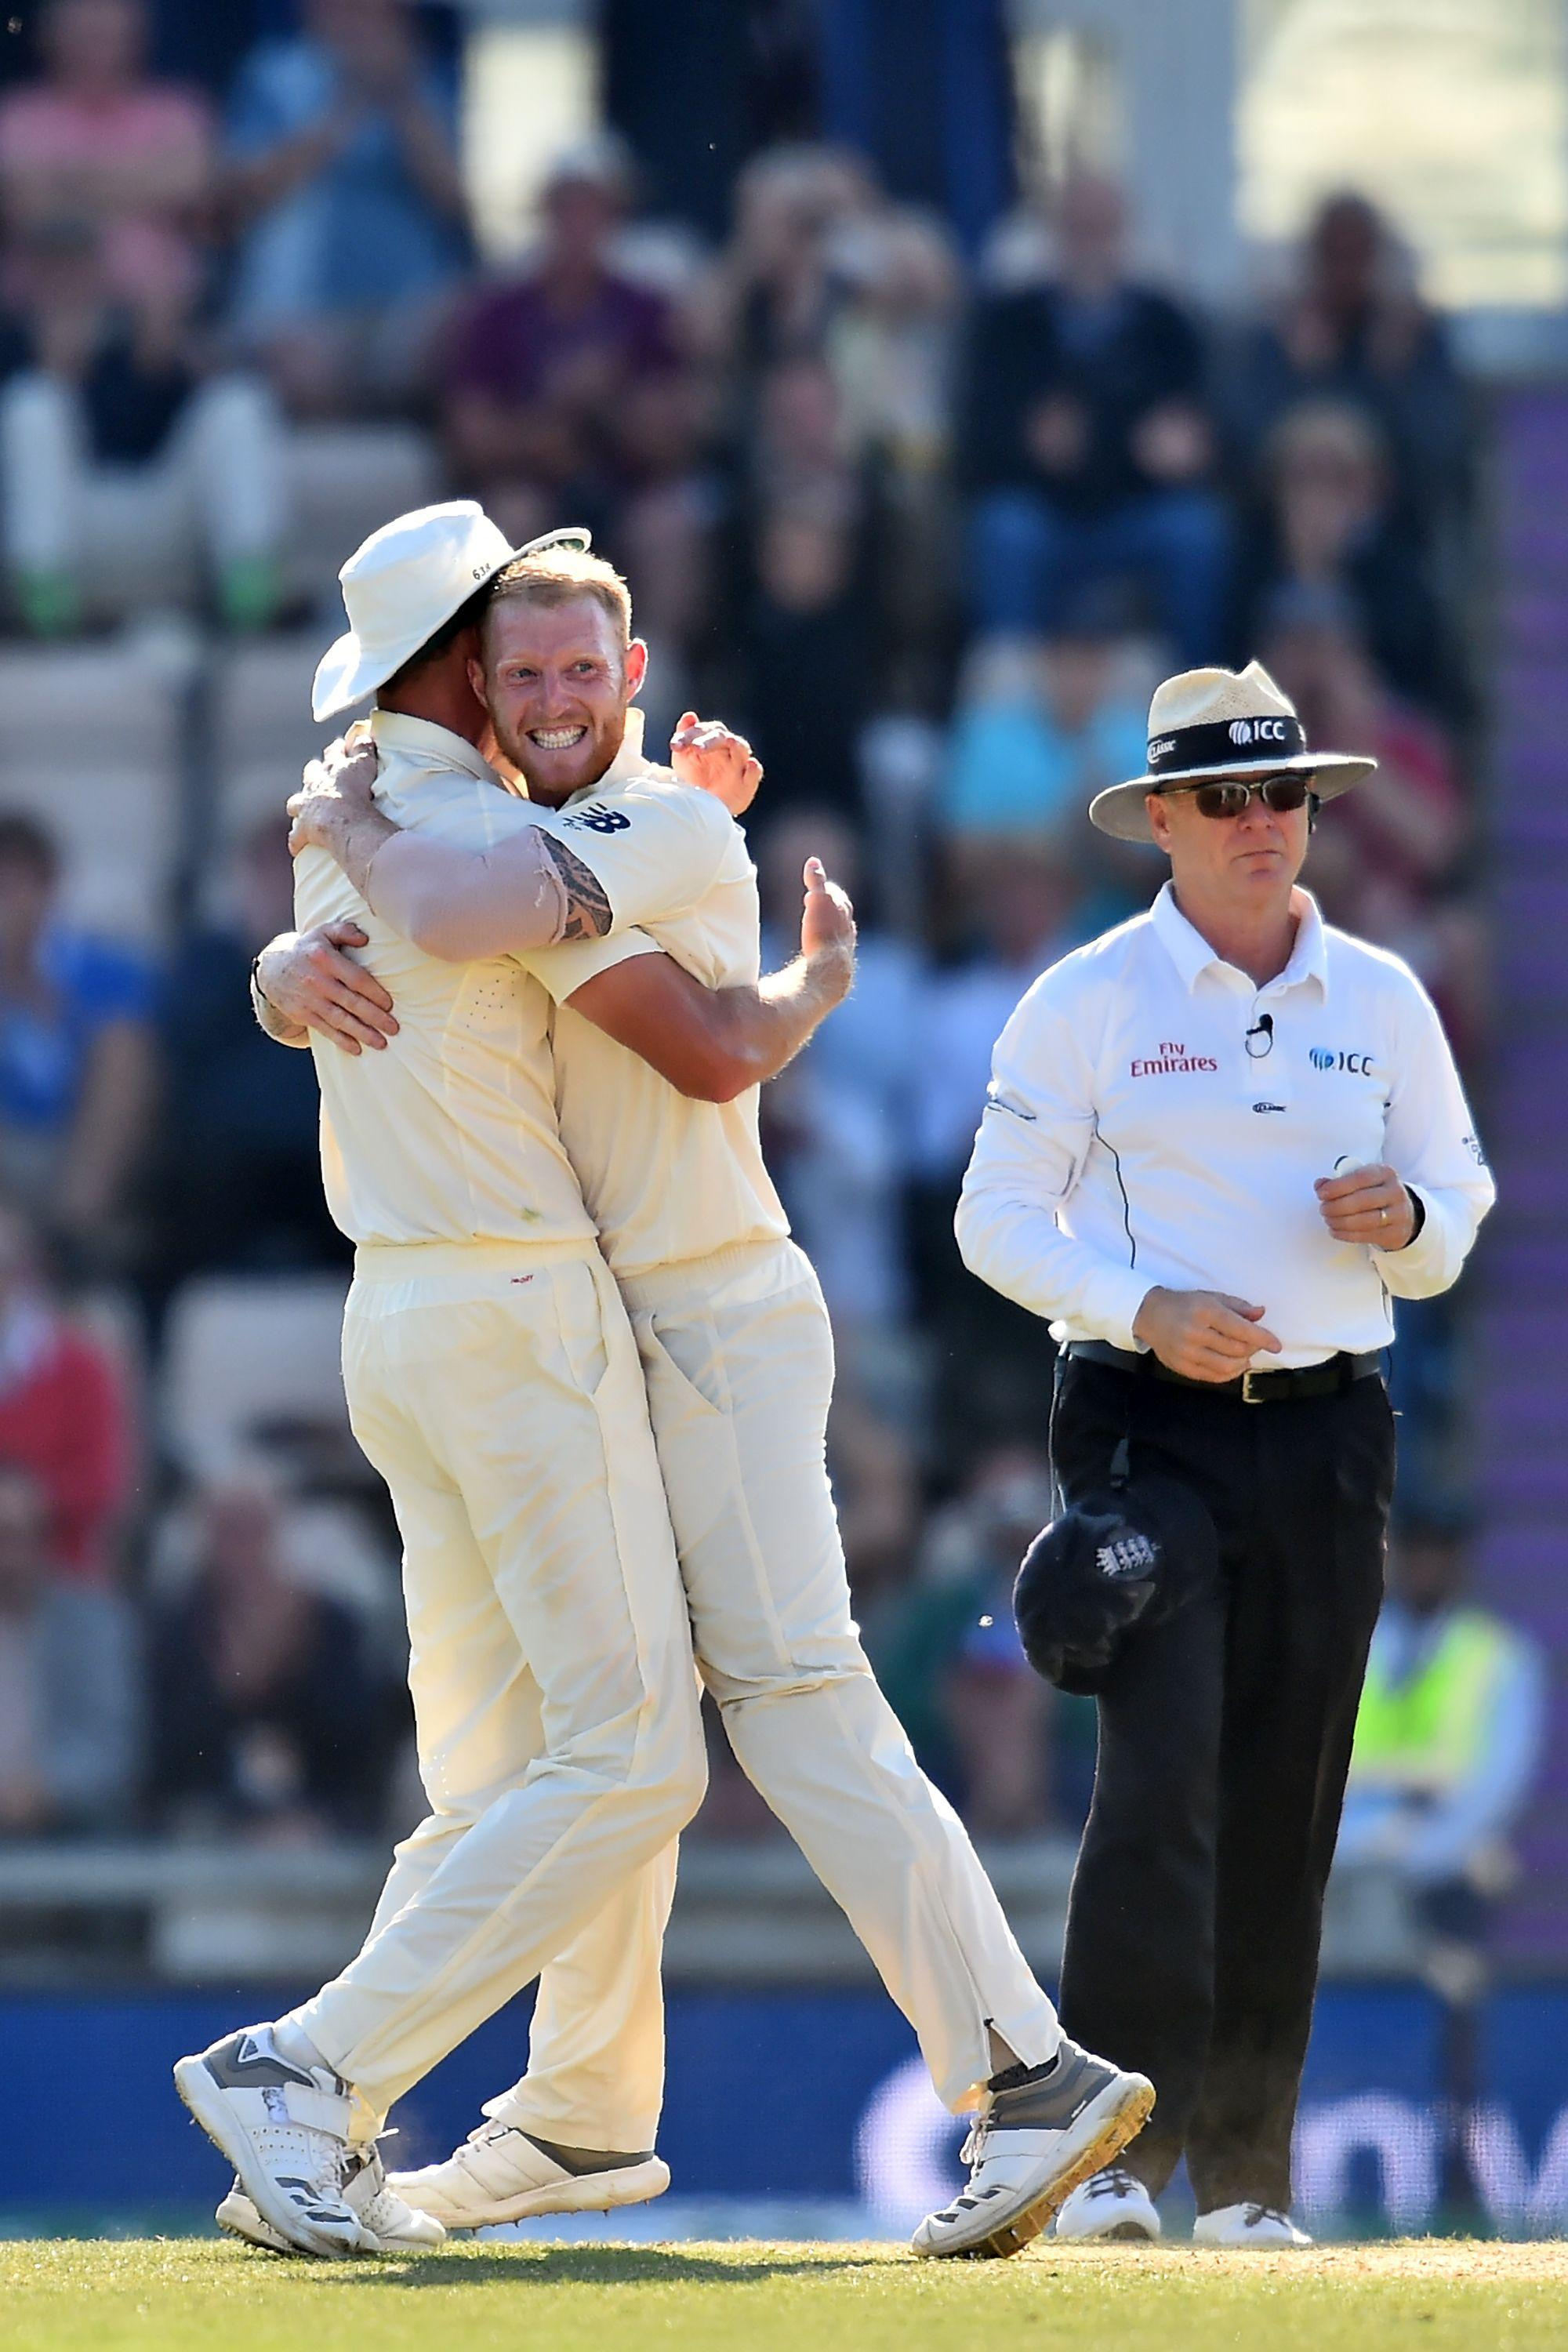 England enjoyed a superb evening session at the Ageas Bowl to clinch the series